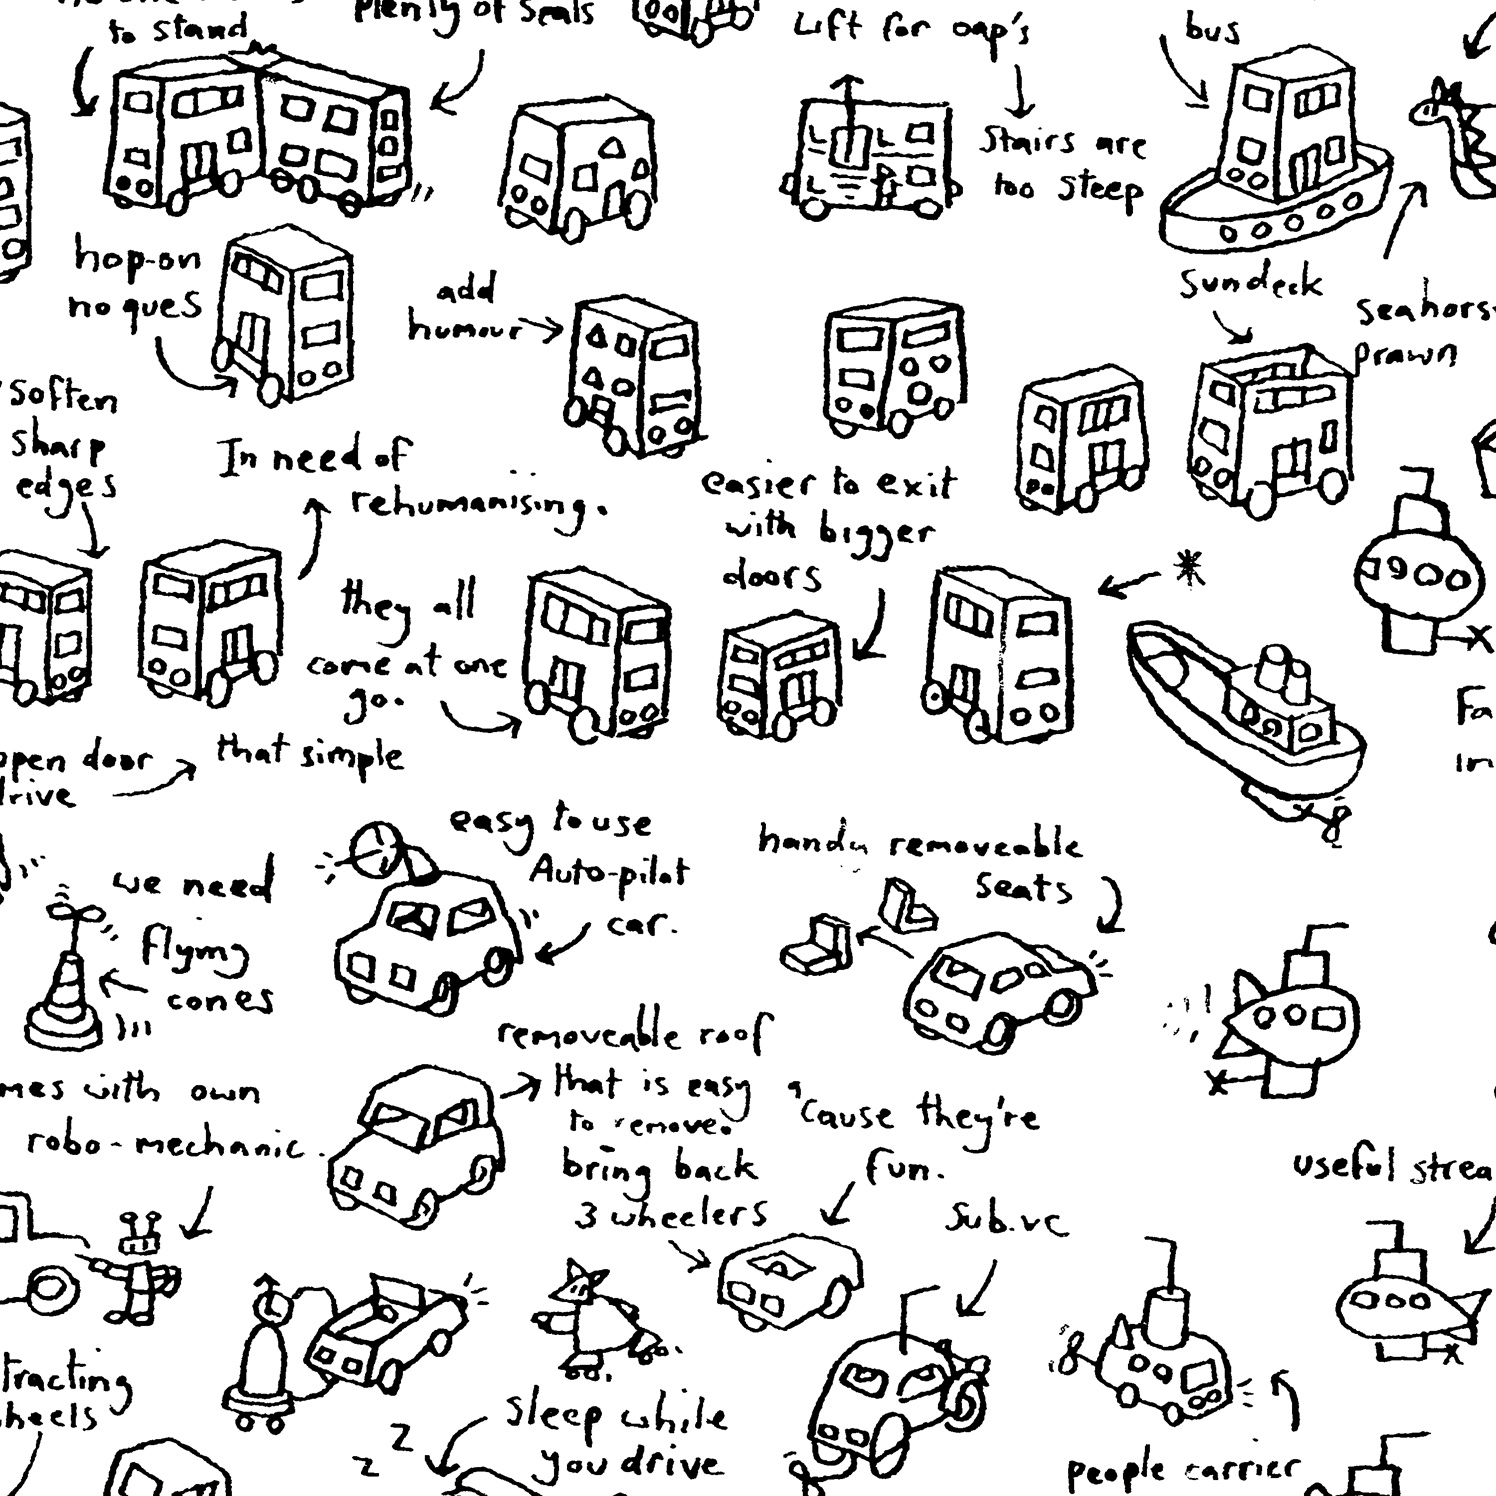 Brainstorm Hand Drawn London Buses